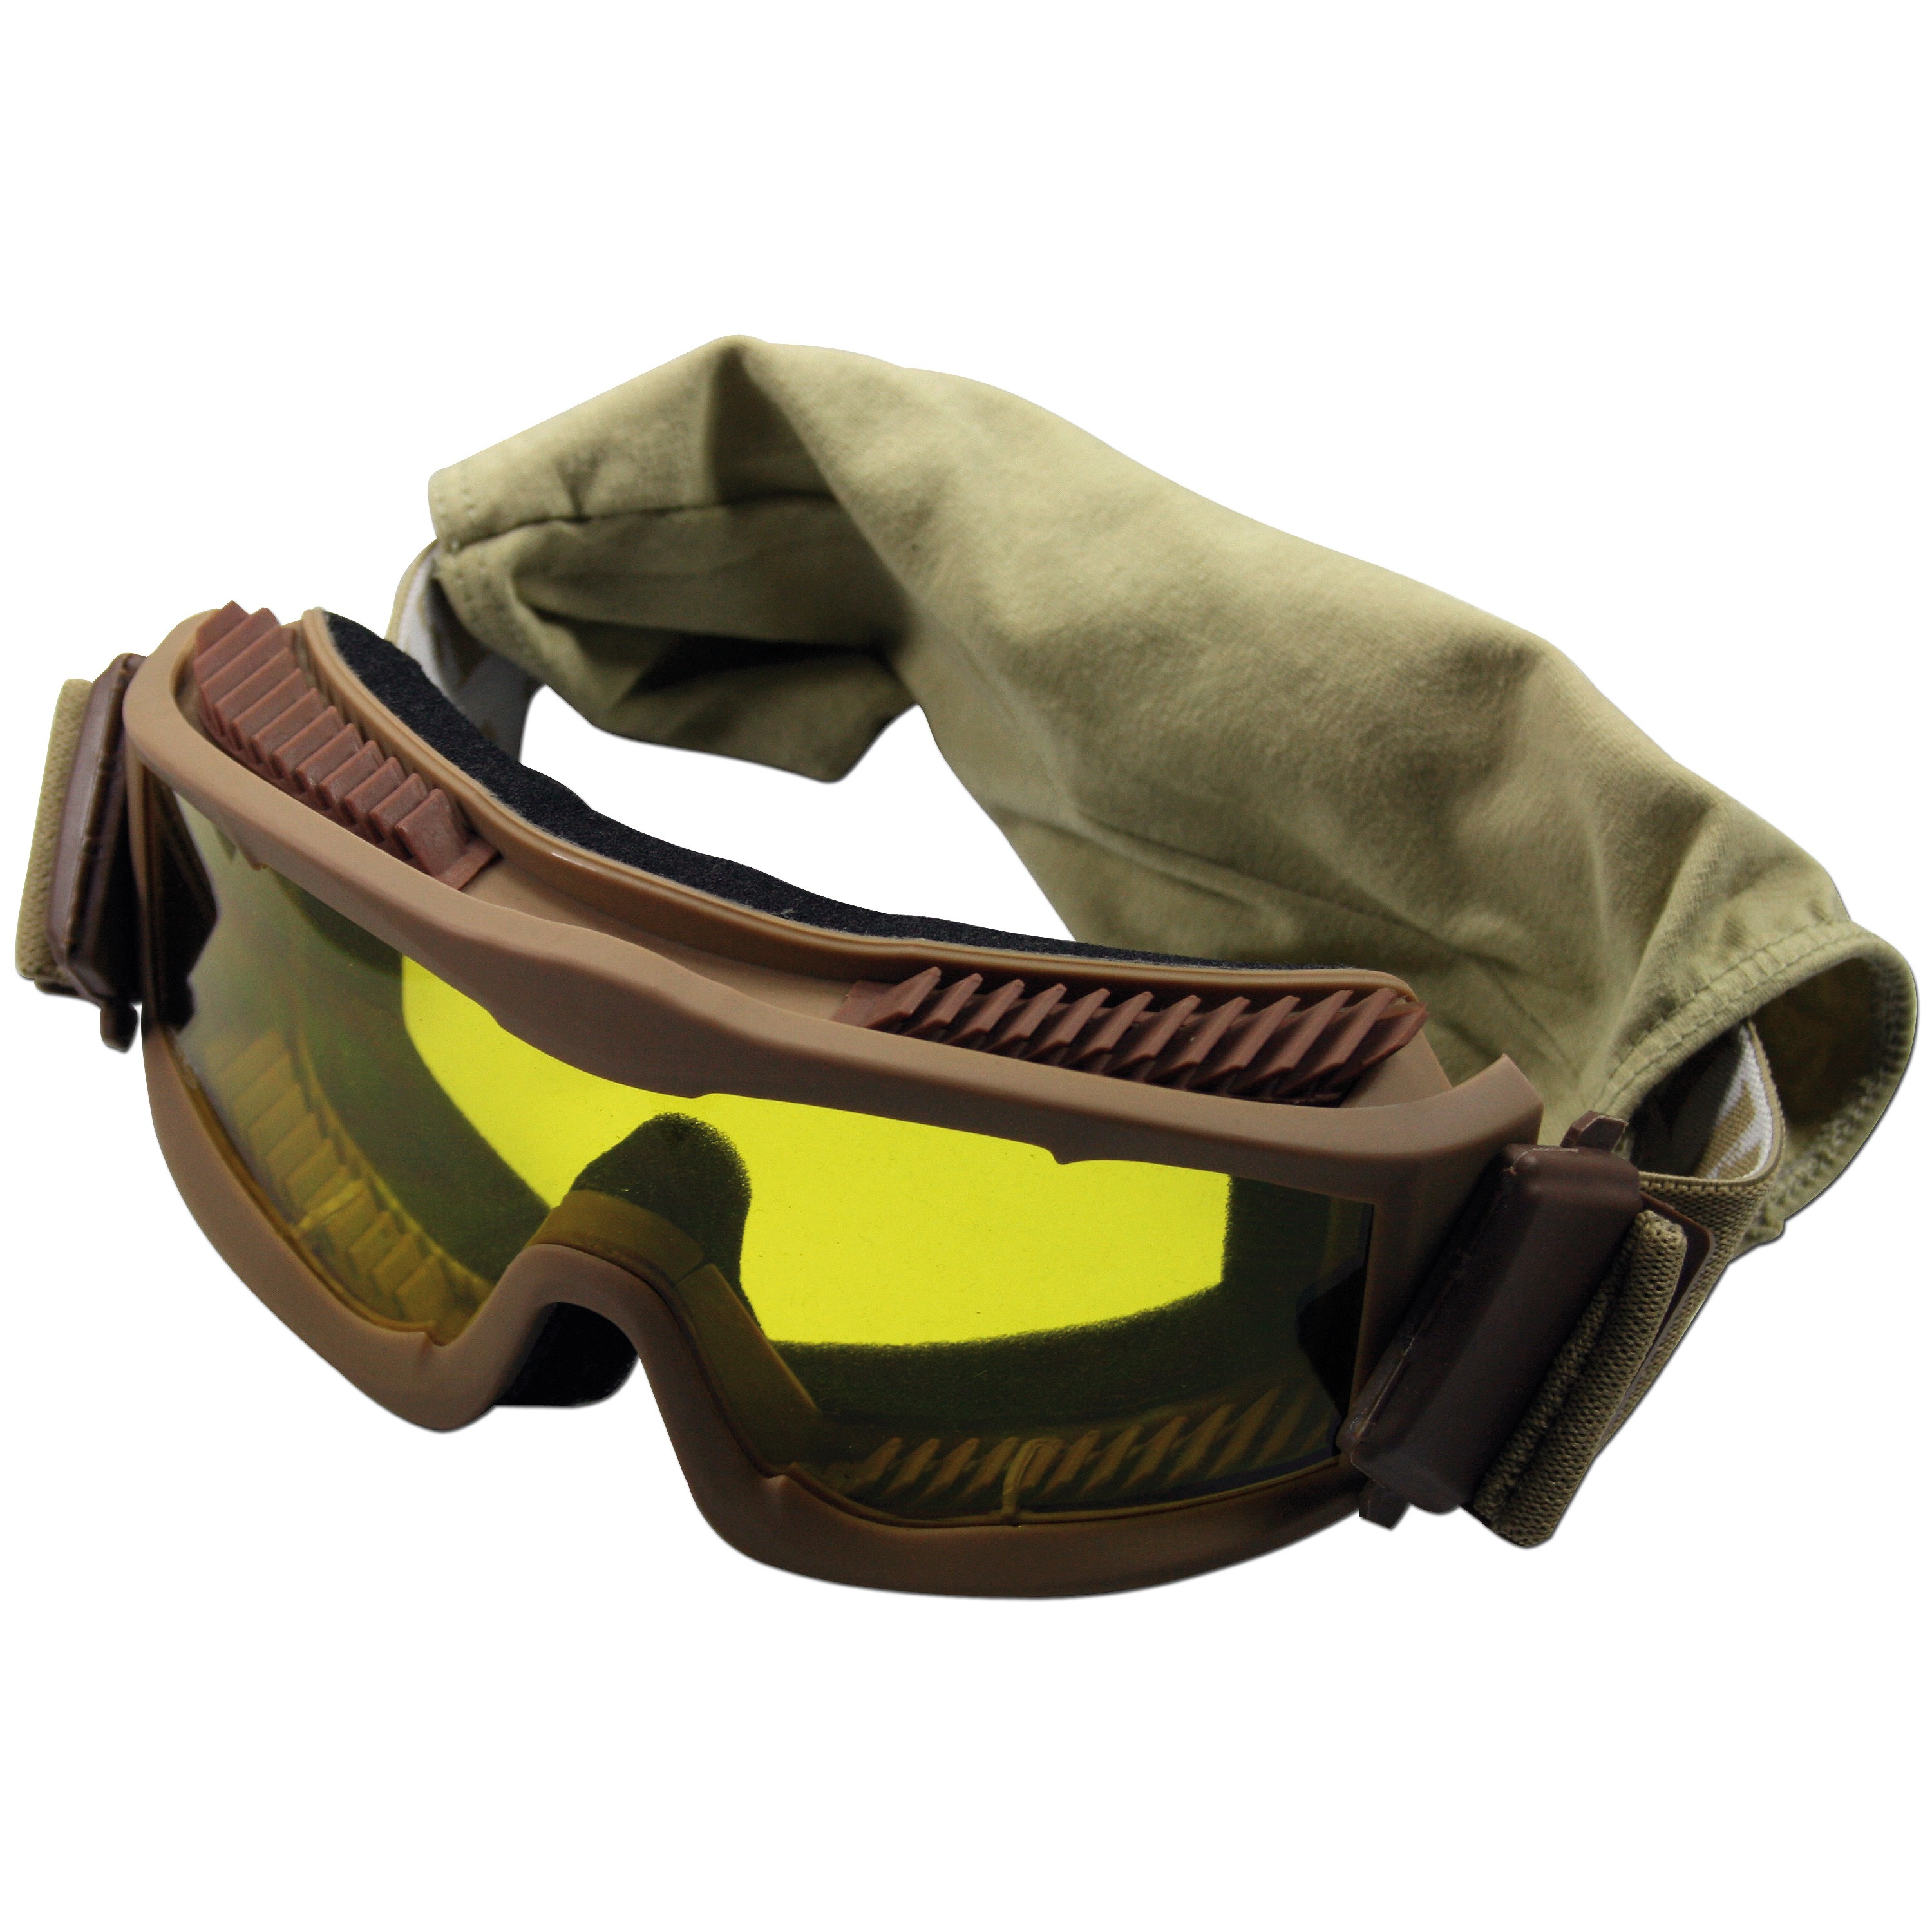 Schutzbrille Thunder deluxe MFH coyote